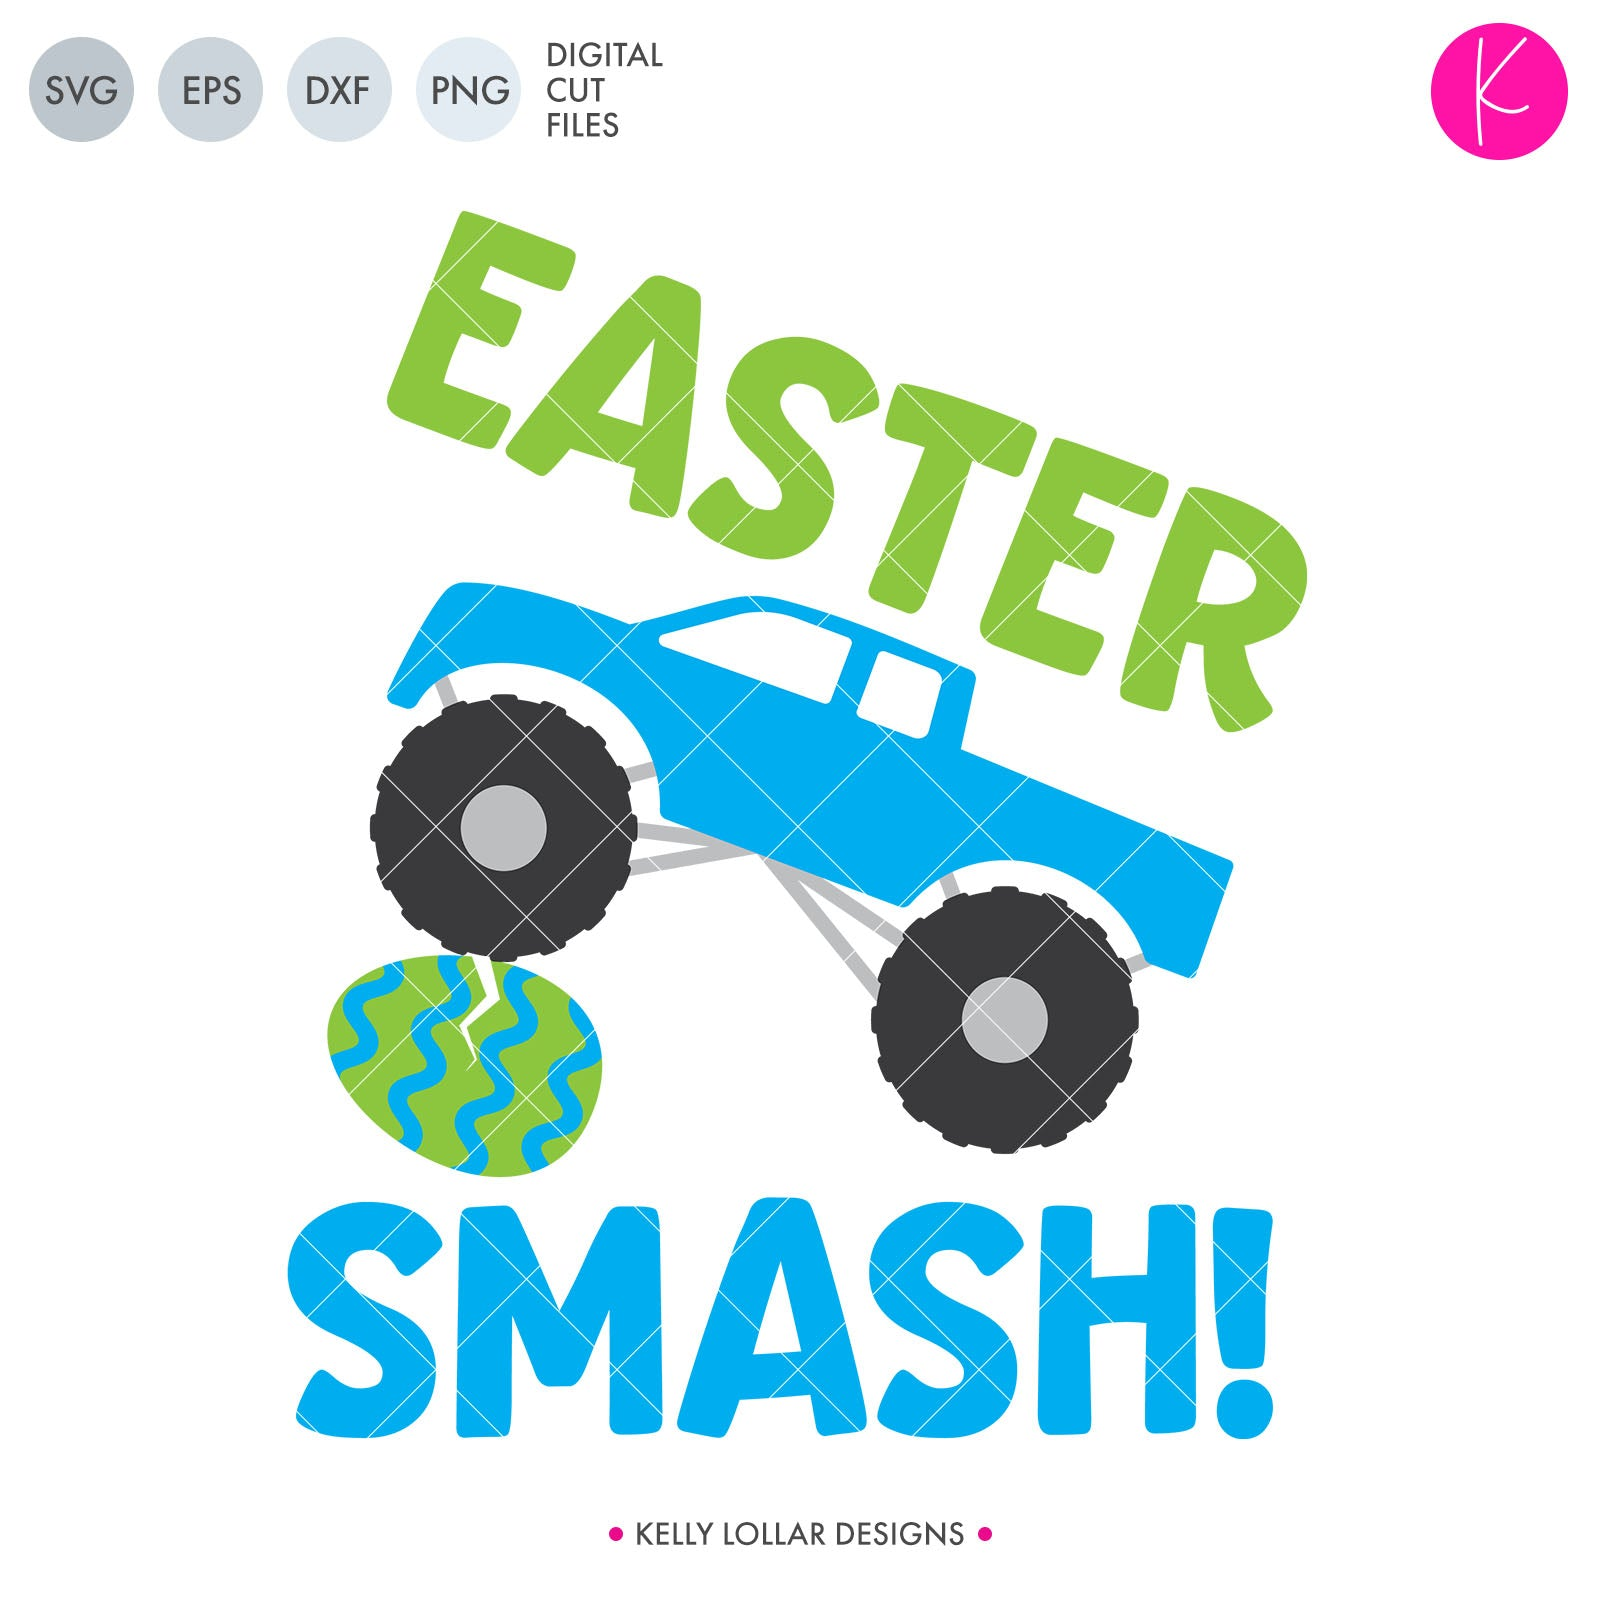 Easter Smash Monster Trucks svg cut file with truck crushing an Easter egg